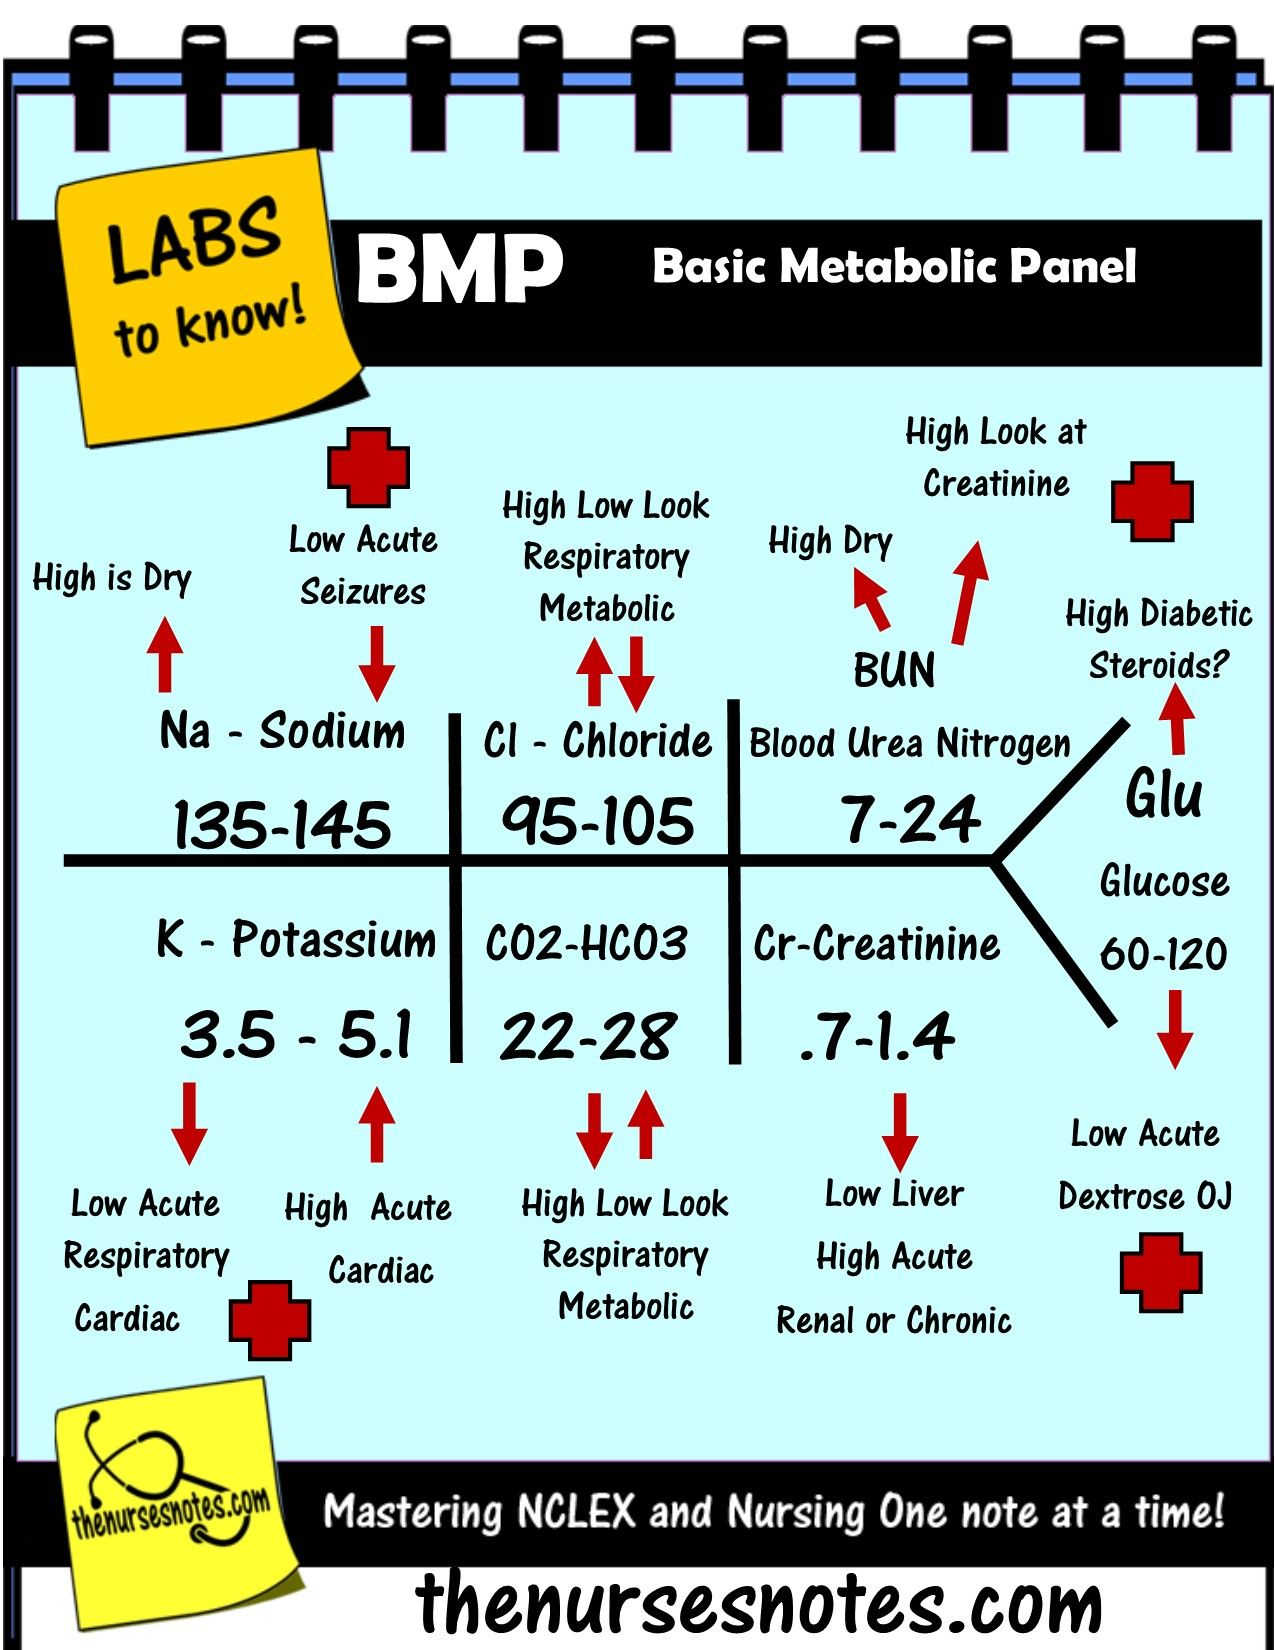 Bmp chem7 fishbone diagram explaining labs from the blood book bmp chem7 fishbone diagram explaining labs from the blood book theses are the labs you pooptronica Choice Image